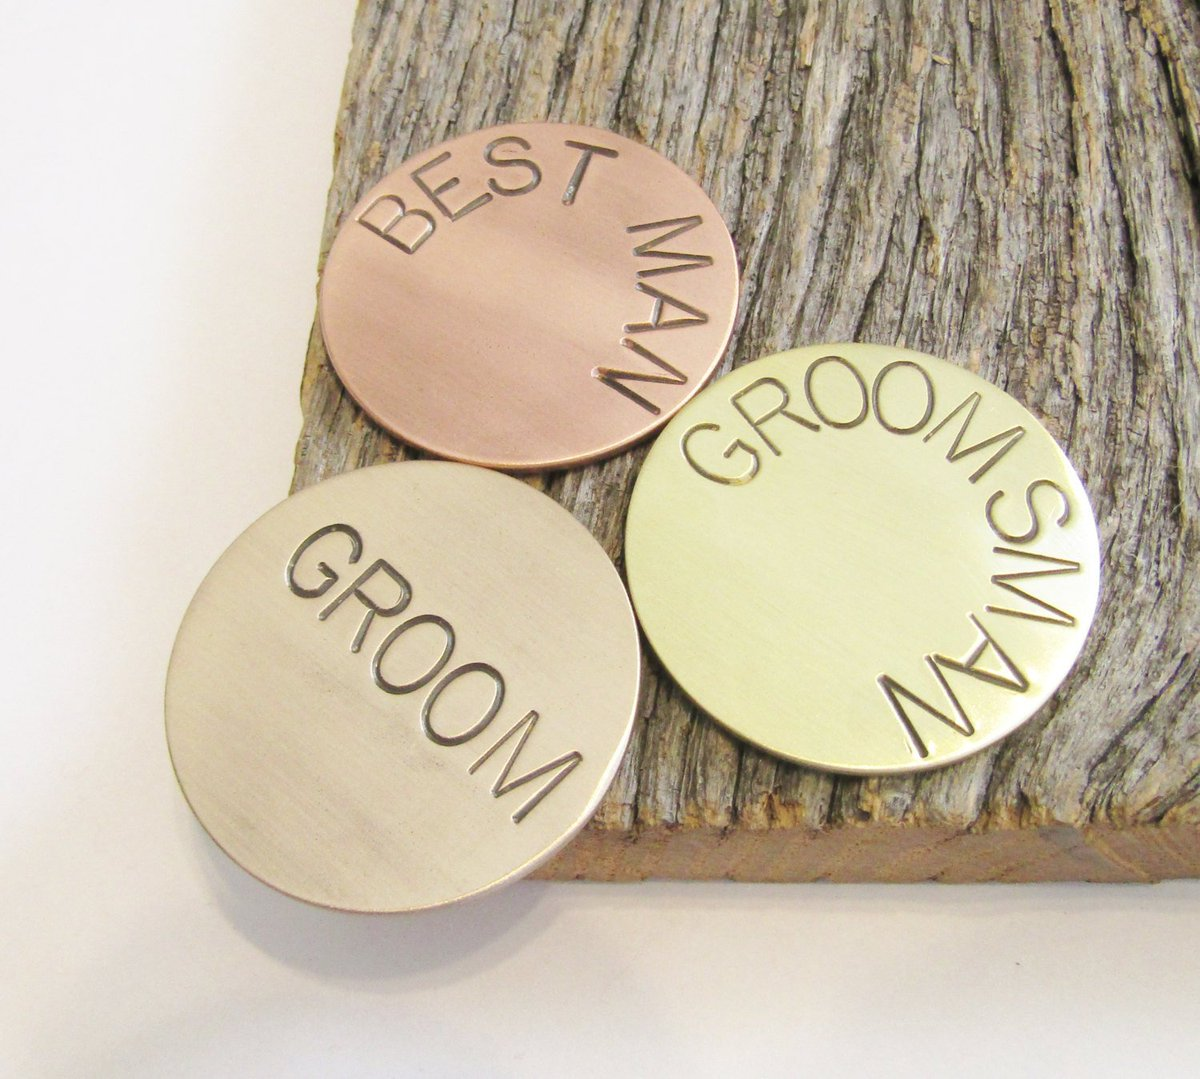 Copper Ball Marker Groom Gift for Best Man Personalized Golf Gift for Groomsman Gift Idea Bride to Dad Wedding Gift Bachelor Party Favor Men http://tuppu.net/dea3e6d2 #CandTCustomLures #Shopify #Mens_gifts